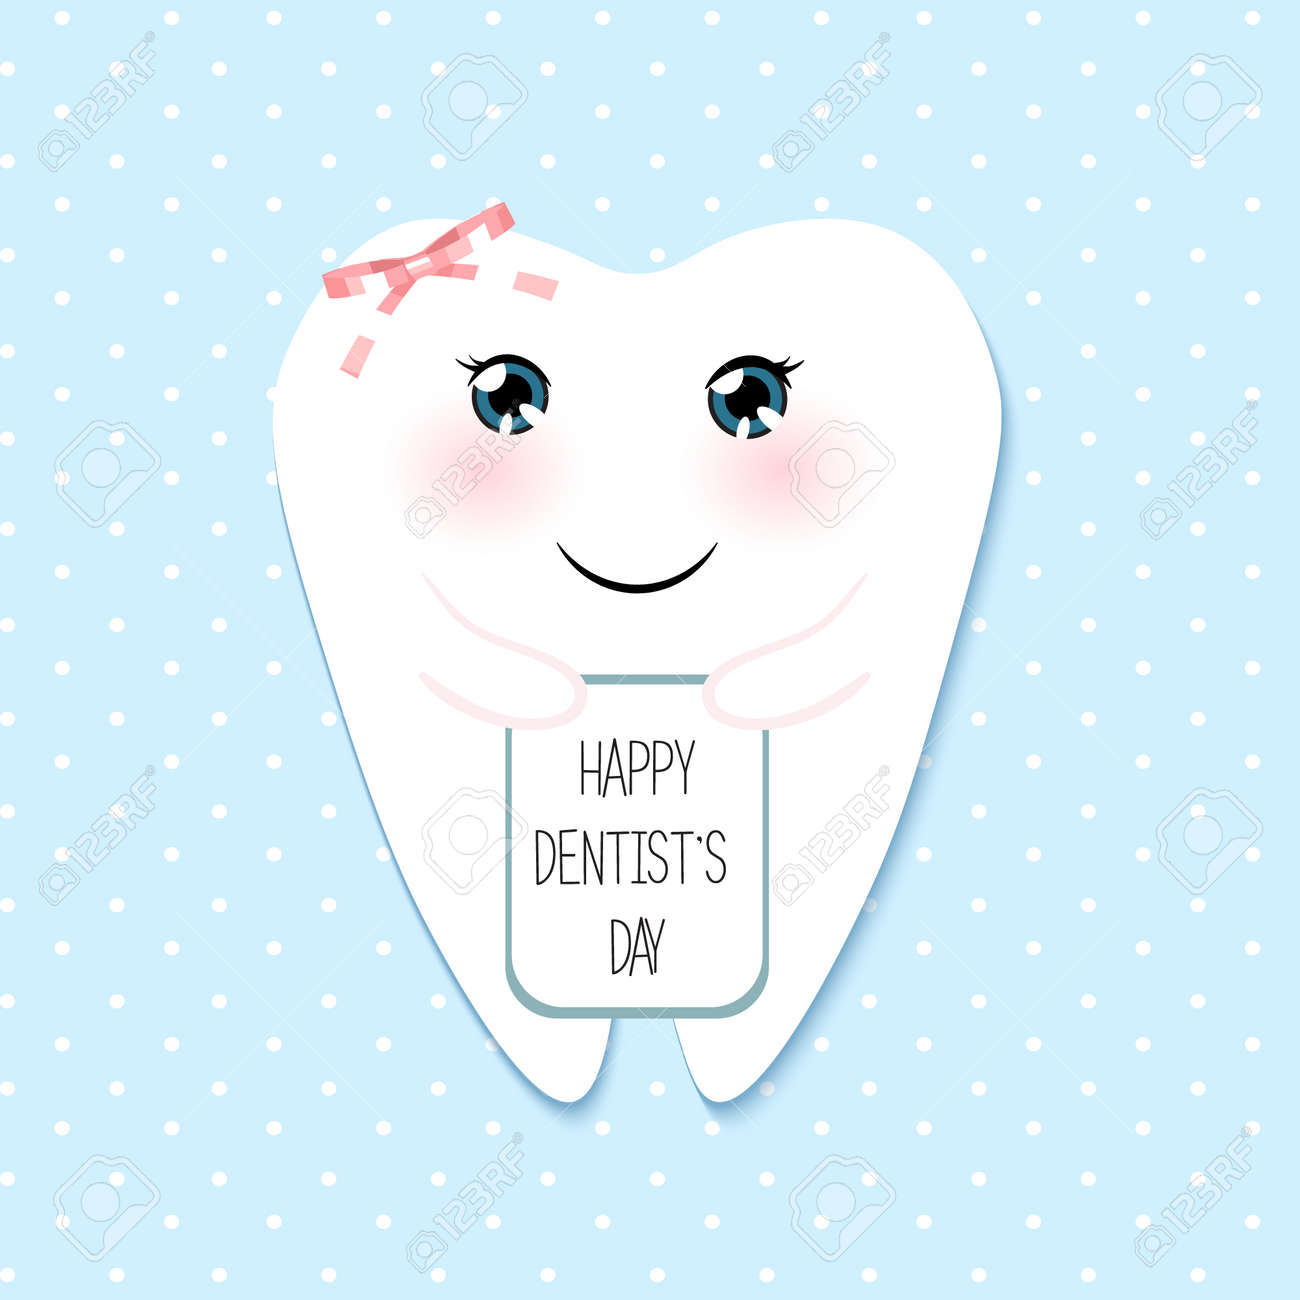 Cute Greeting Card Happy Dentist Day Royalty Free Cliparts Vectors